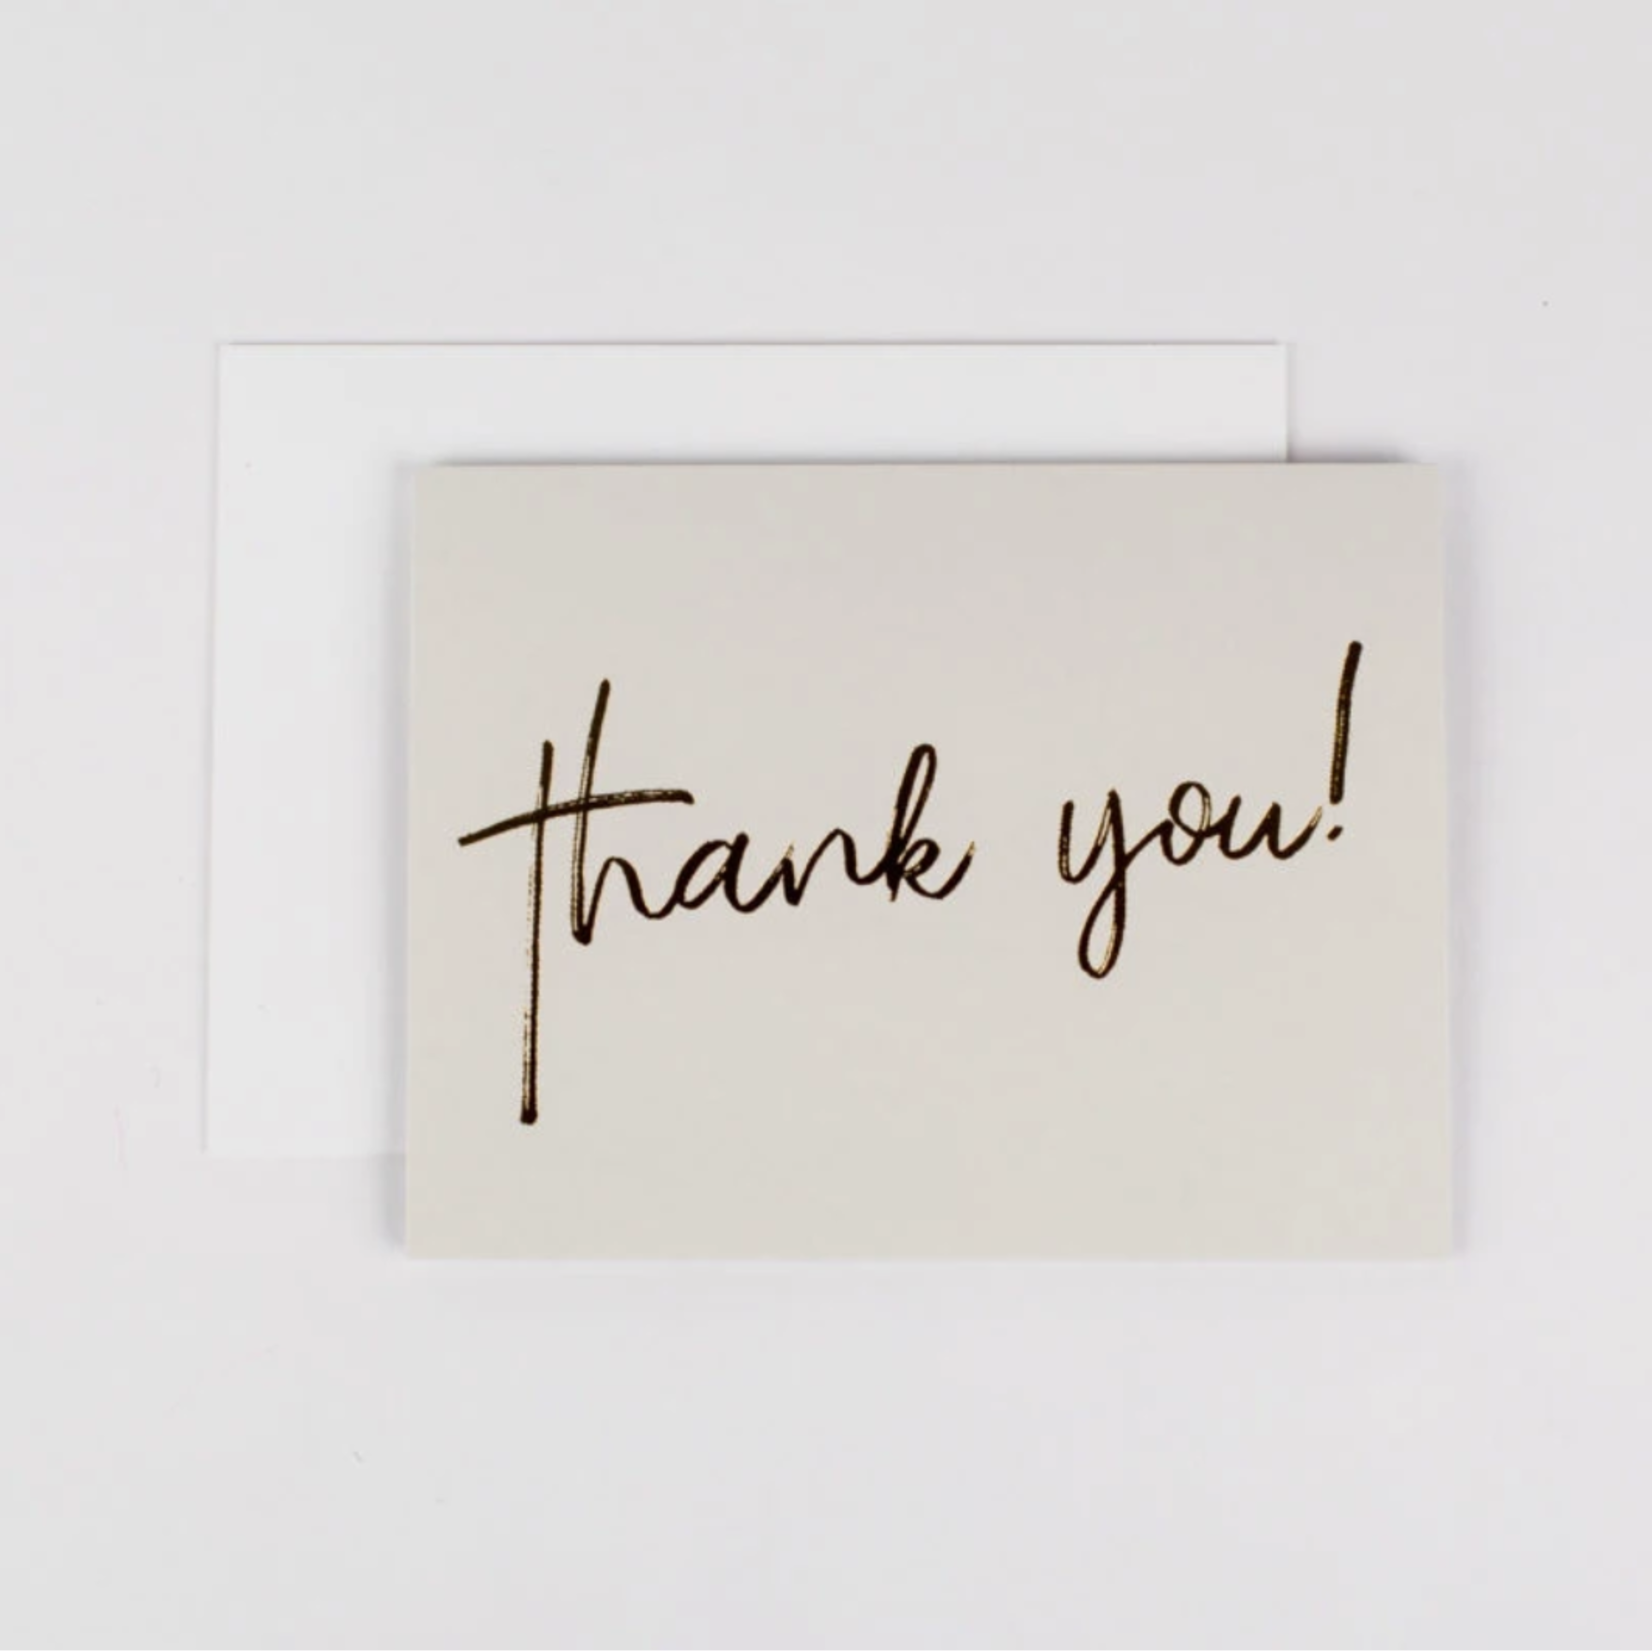 Wrinkle and Crease Thank you! Card